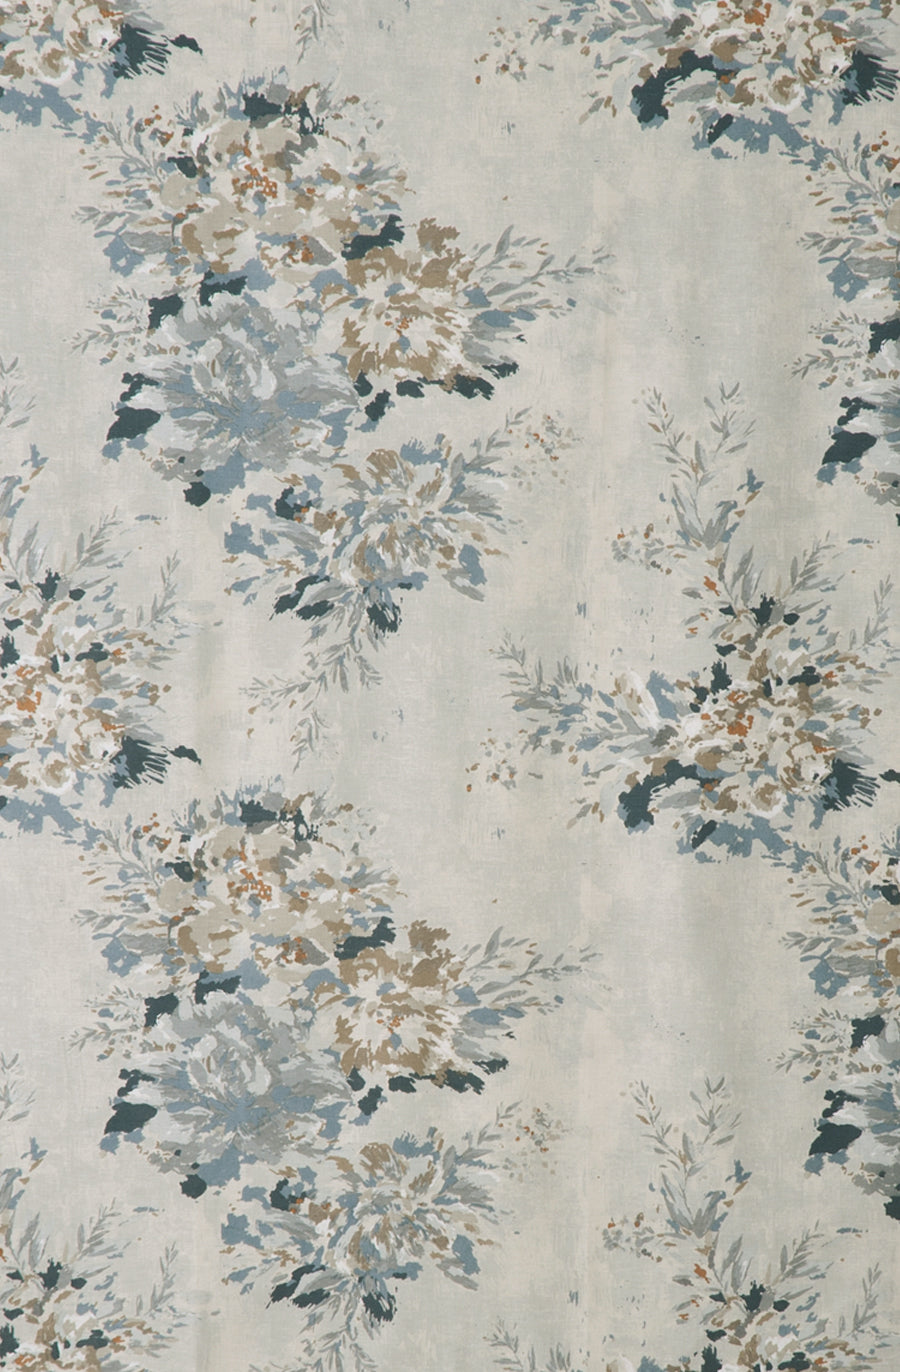 Vernice Chalk Paint Annie Sloan vernice natural fabric